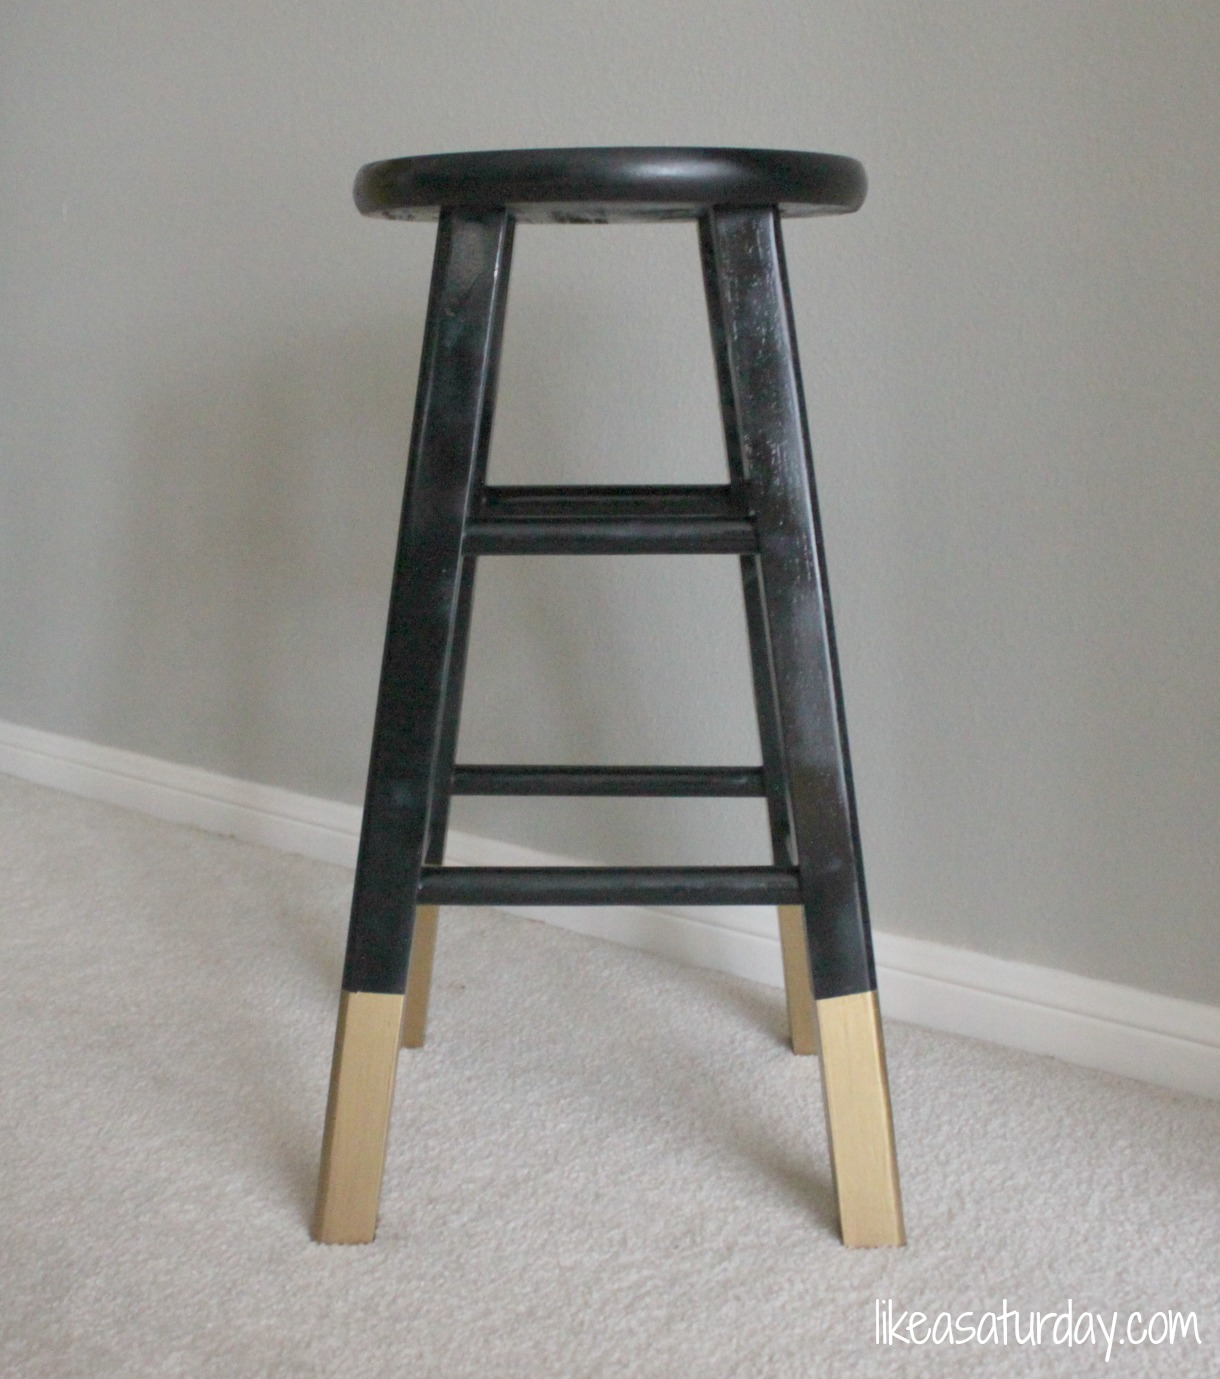 gold dipped bar stools : like a saturday